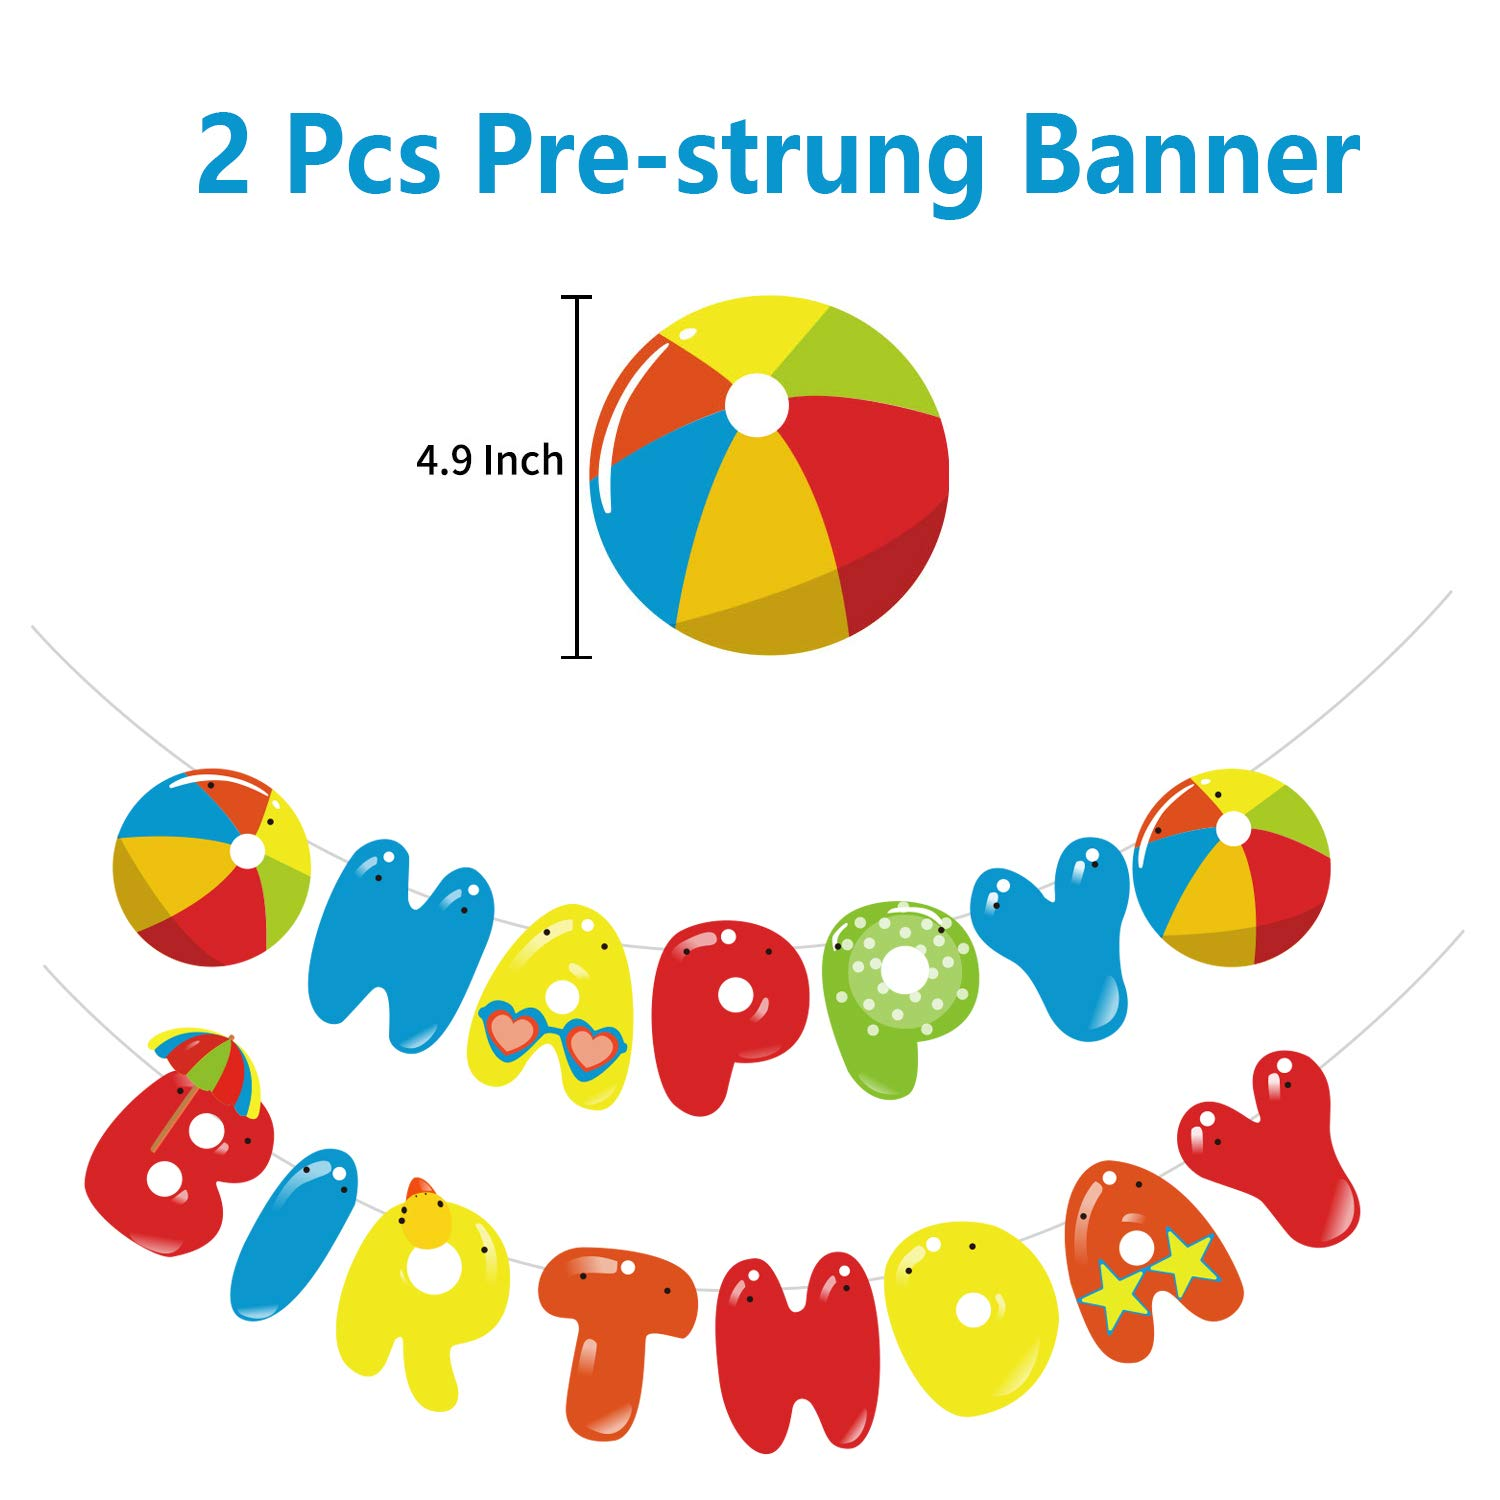 47 Pcs Beach Ball Birthday Party Decoration Supplies with Pre-strung Banners 24pcs Cupcake Topper Cake Topper 20pcs Inflatable Beach Balloons for Summer Colorful Beach Pool Themed Kids Birthday Party Decorations